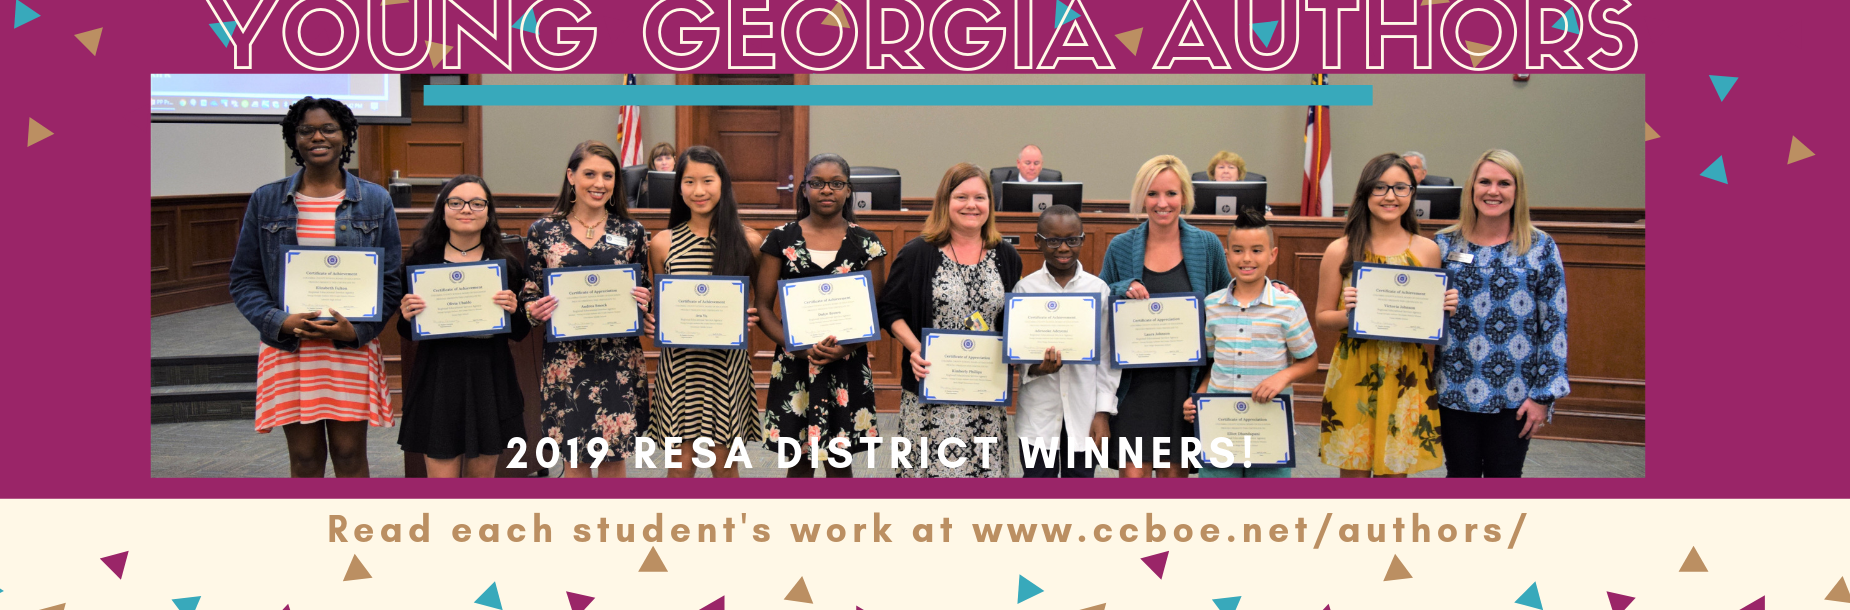 Young Georgia Authors with certificates at the BOE meeting.